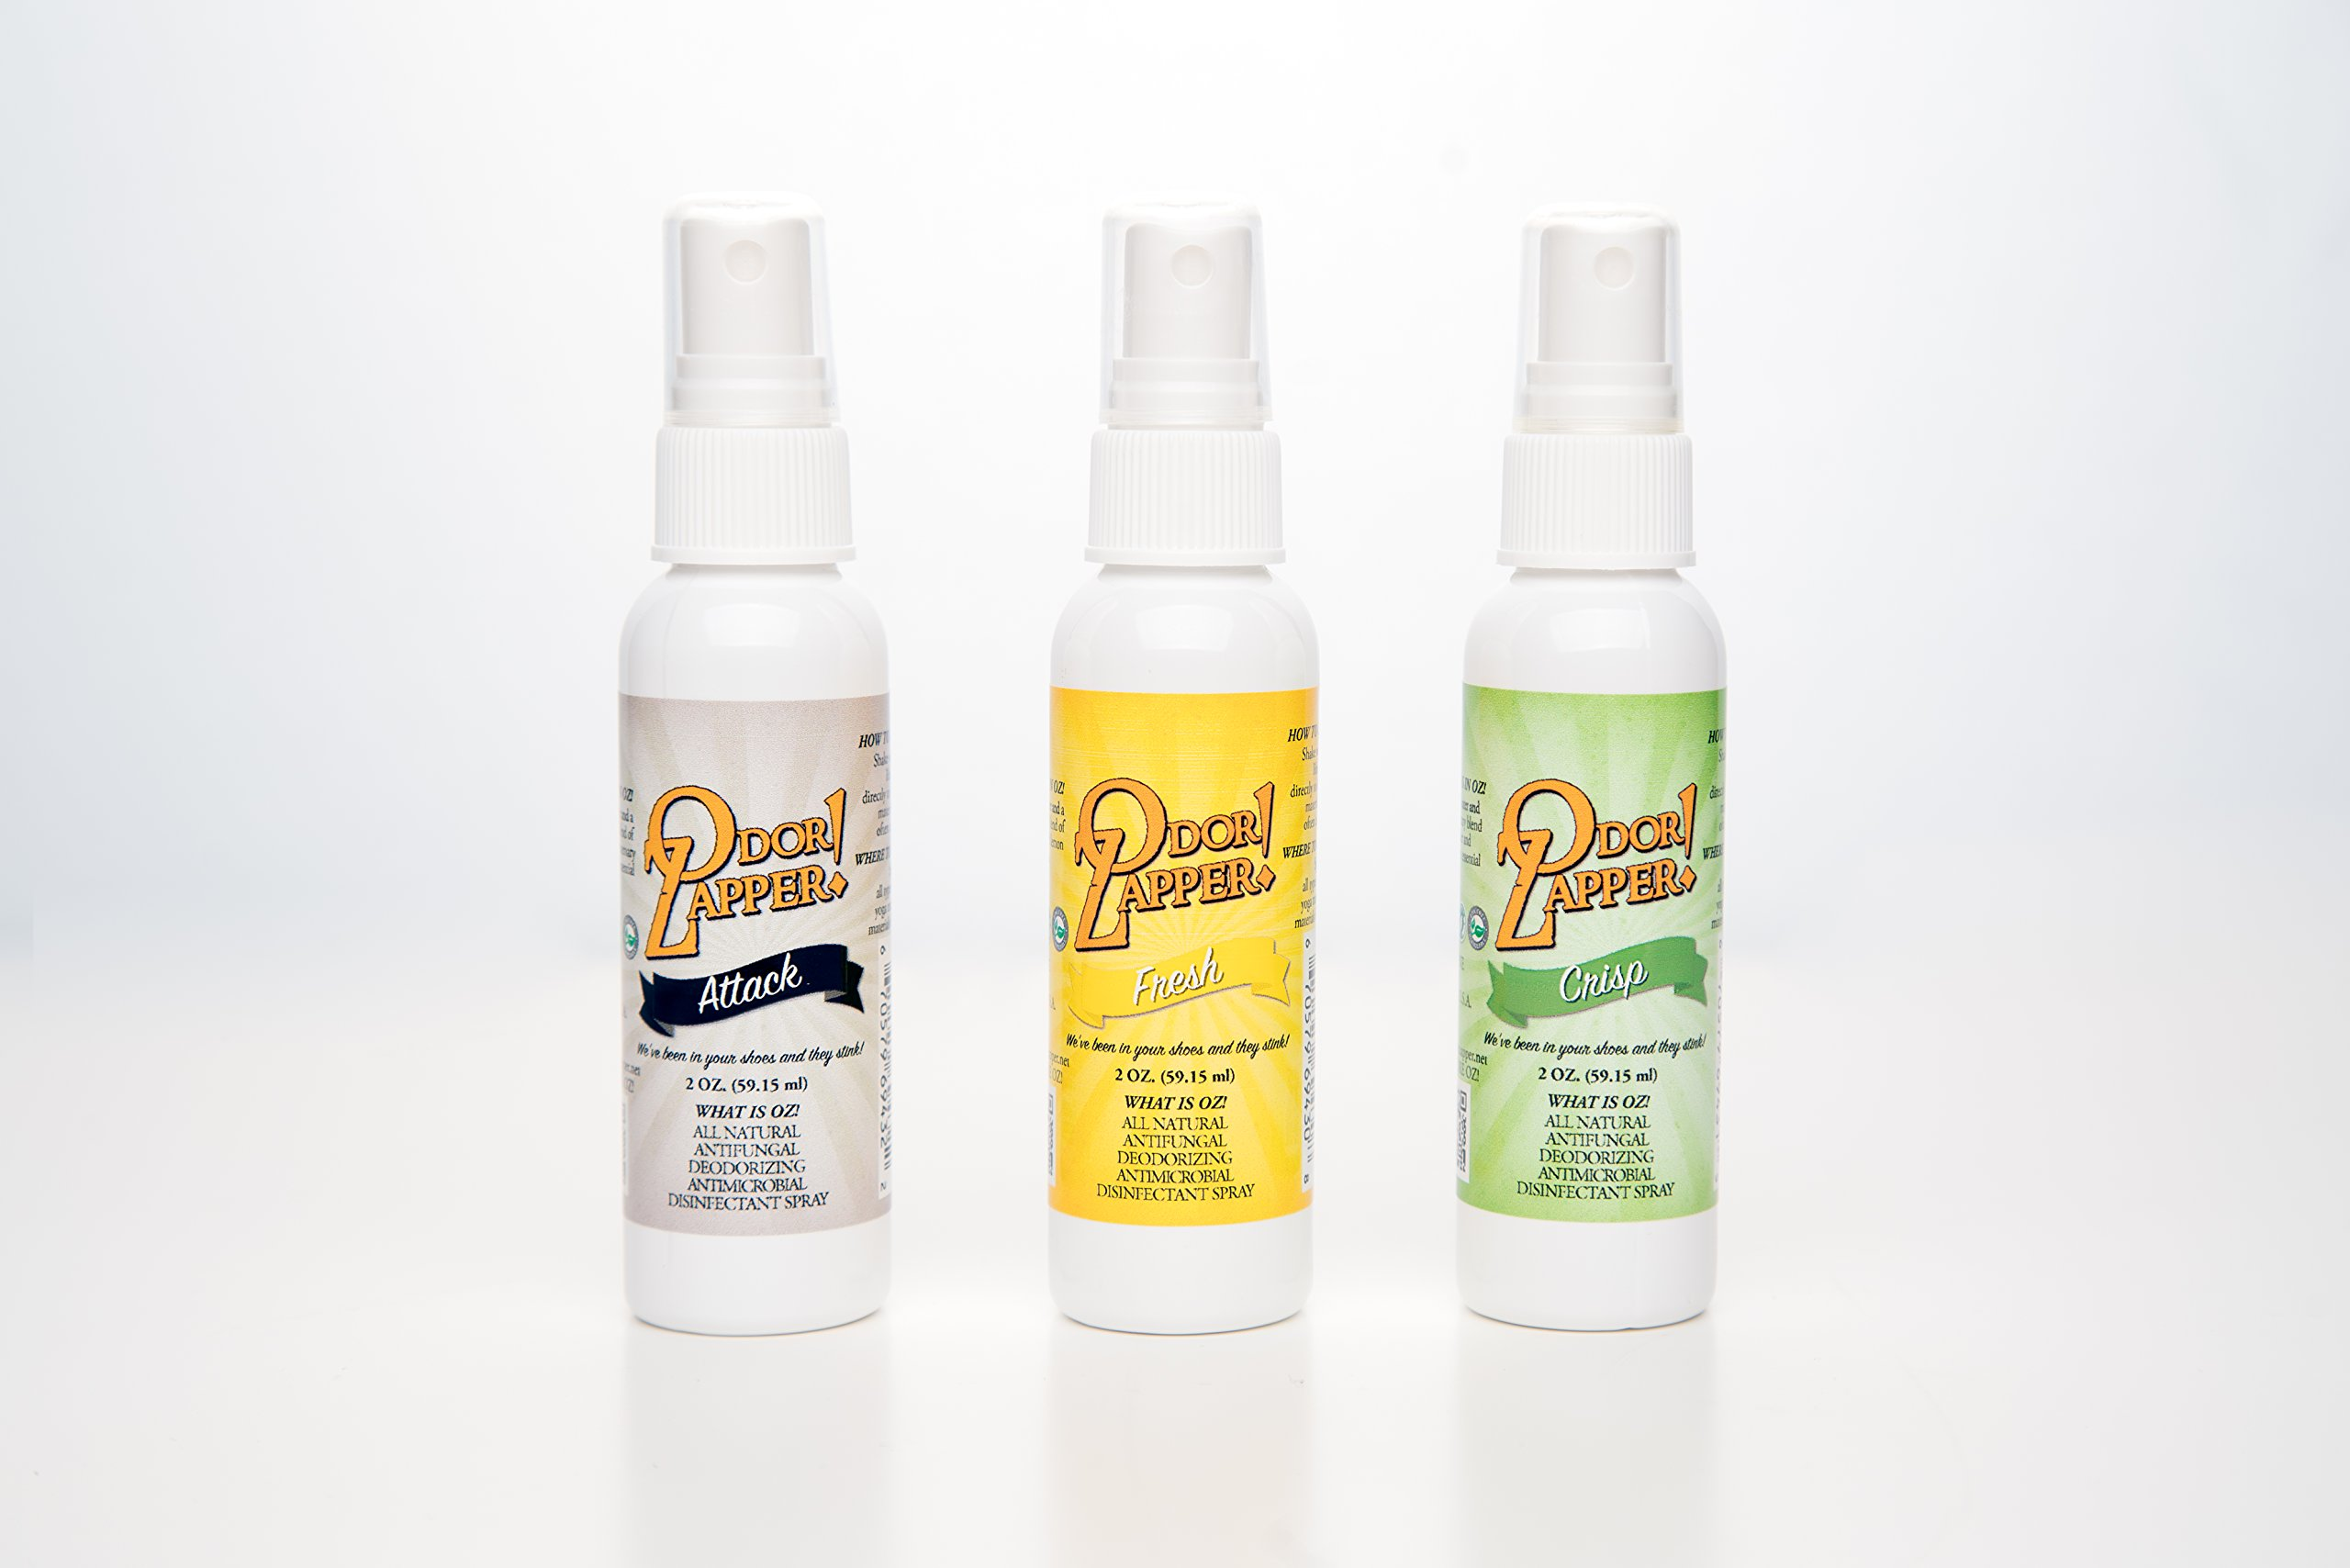 Odor Zapper Disinfectant Spray - For use in Shoes, Gym Bags, Yoga Mats, Kid's Cars and More! - ''Fresh Pack'' - 3 Pack - 2 Ounce Bottles